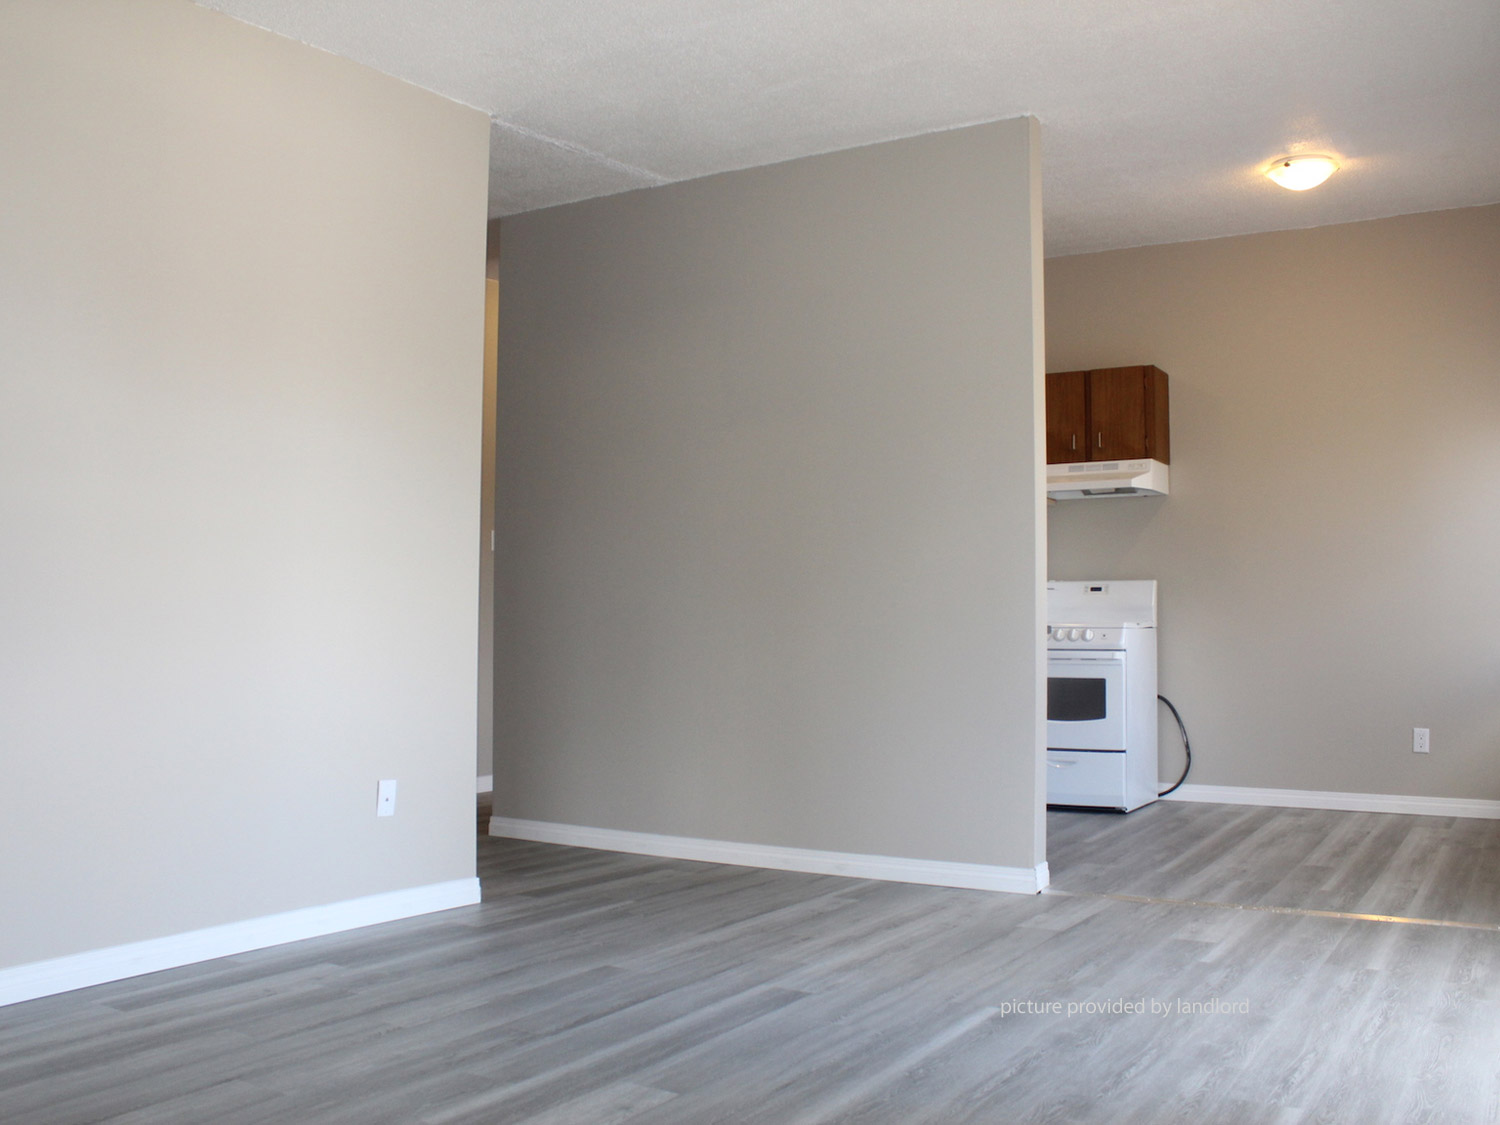 Blakiston Drive NW-Blow Street NW, Calgary, AB : 2 Bedroom ...